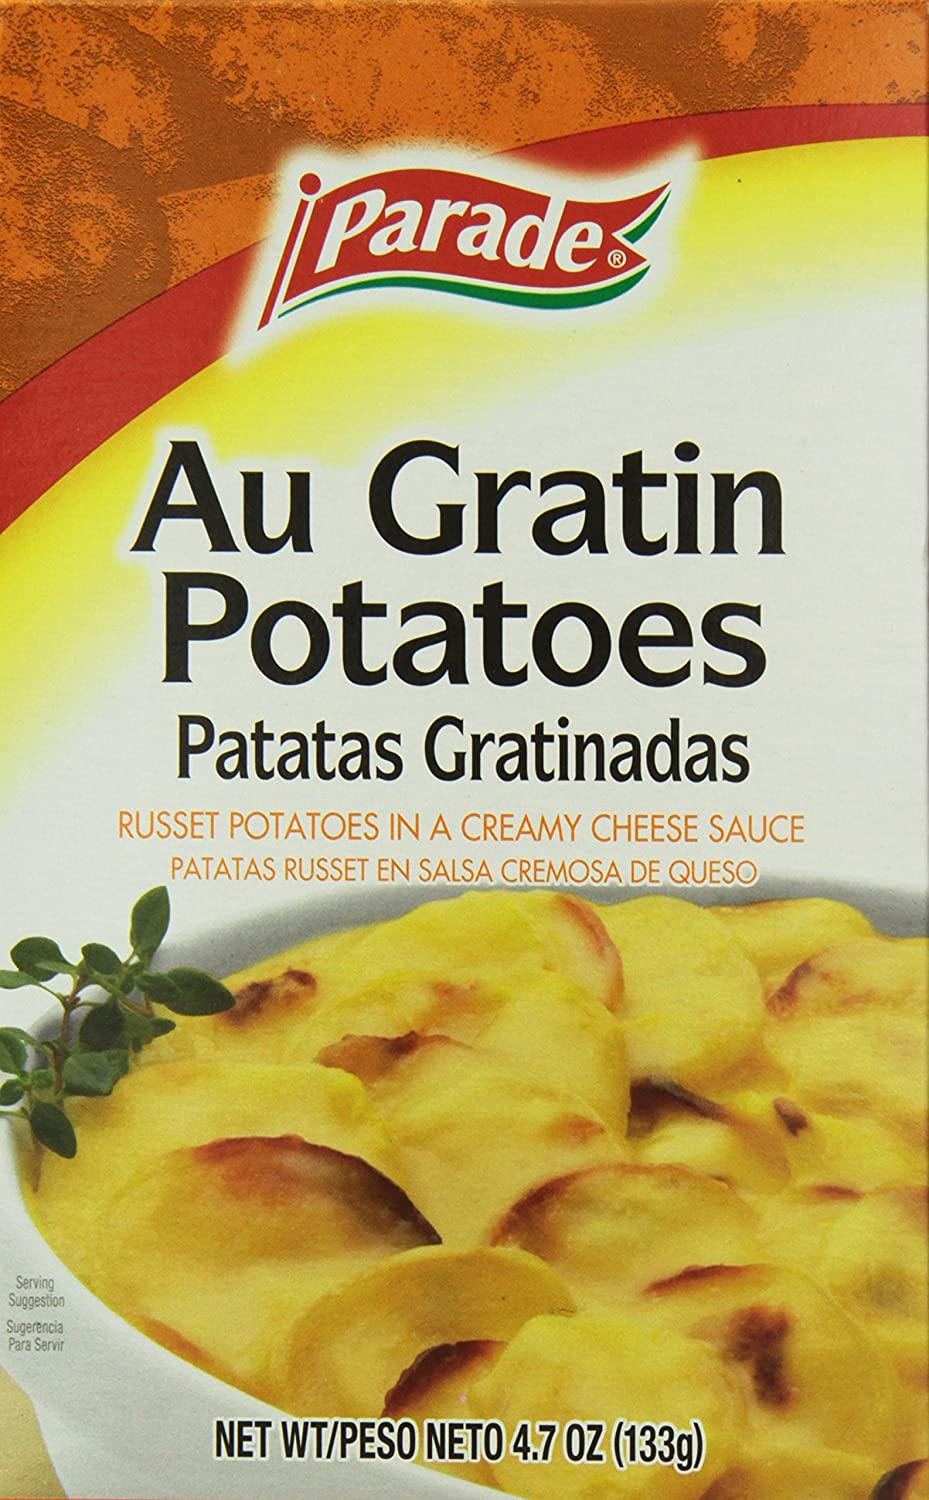 Amazon.com : Parade Au Gratin Potatoes, 4.7 Ounce (Pack of 12) : Grocery & Gourmet Food